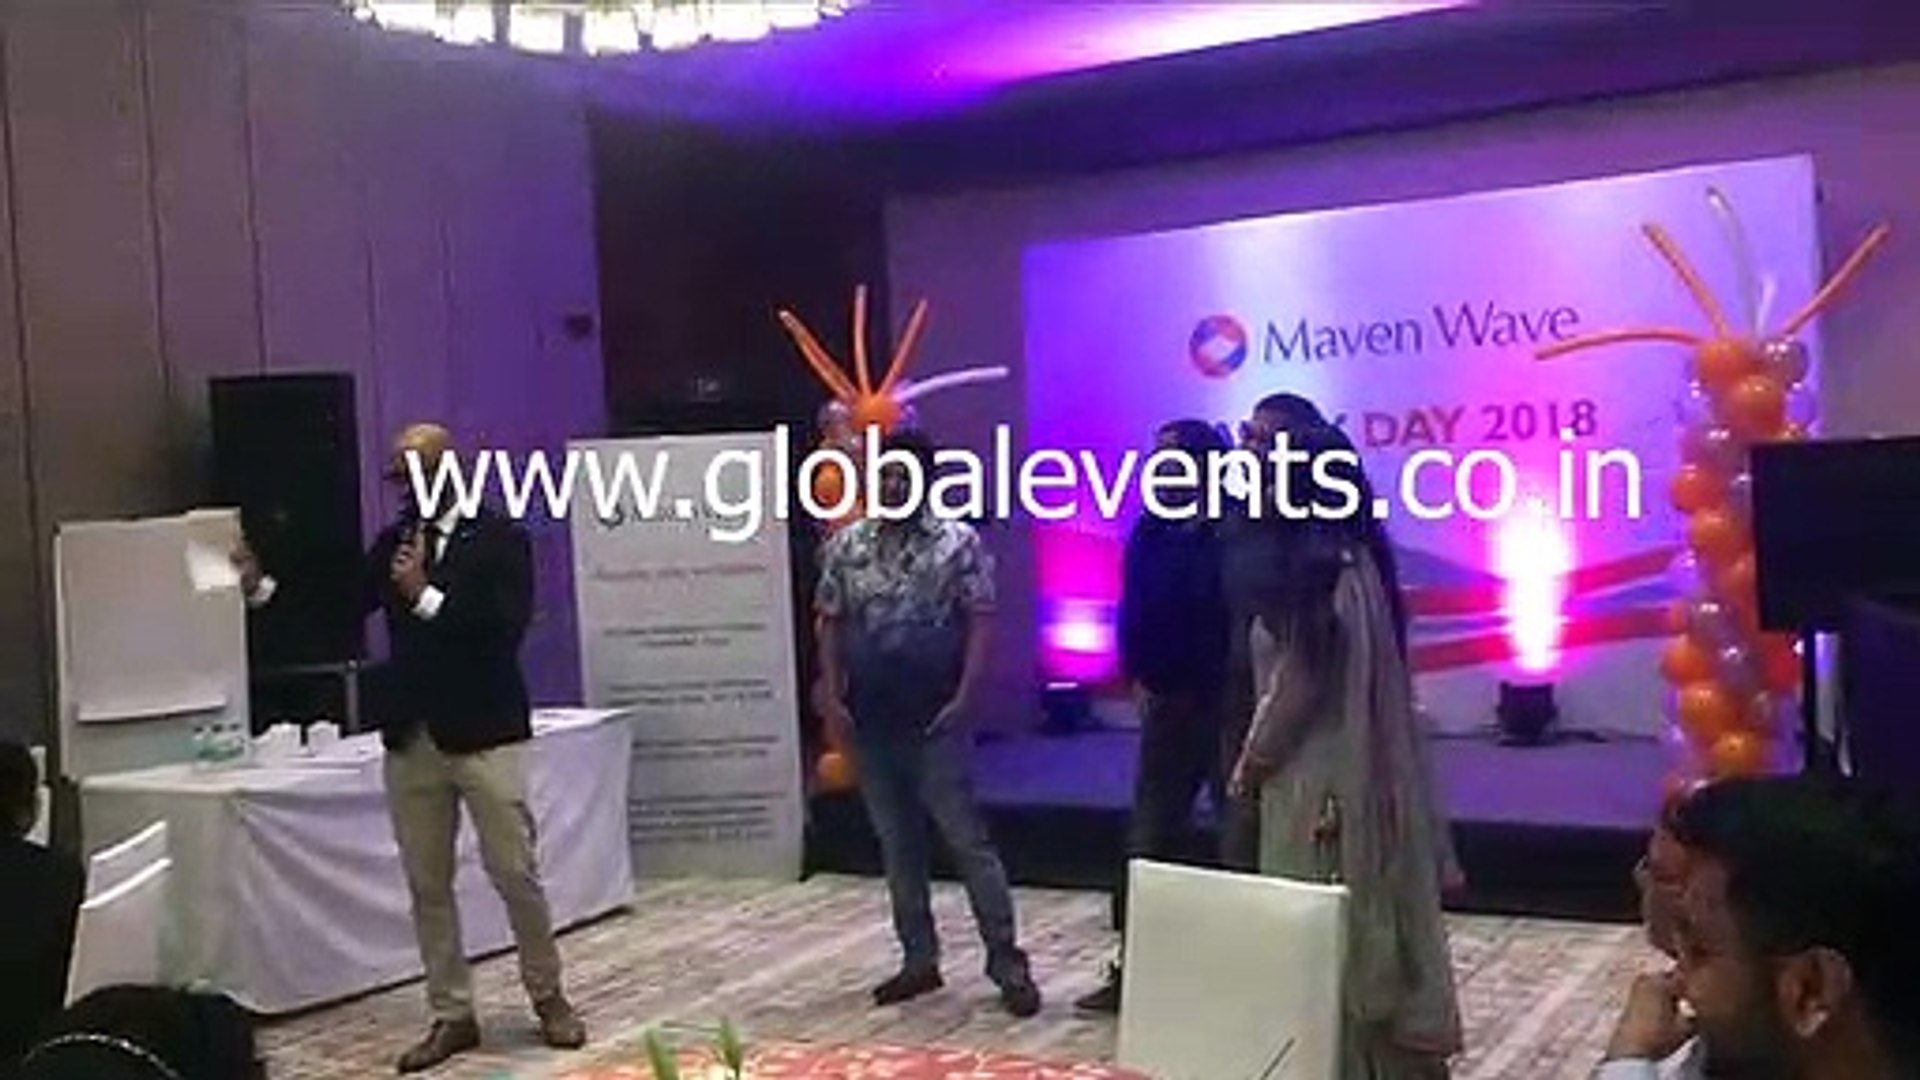 GLOBAL EVENT MANAGEMENT COMPANIES IN CHANDIGARH 9216717252 CALL FOR CORPORATE EVENTS  & SOCIAL E